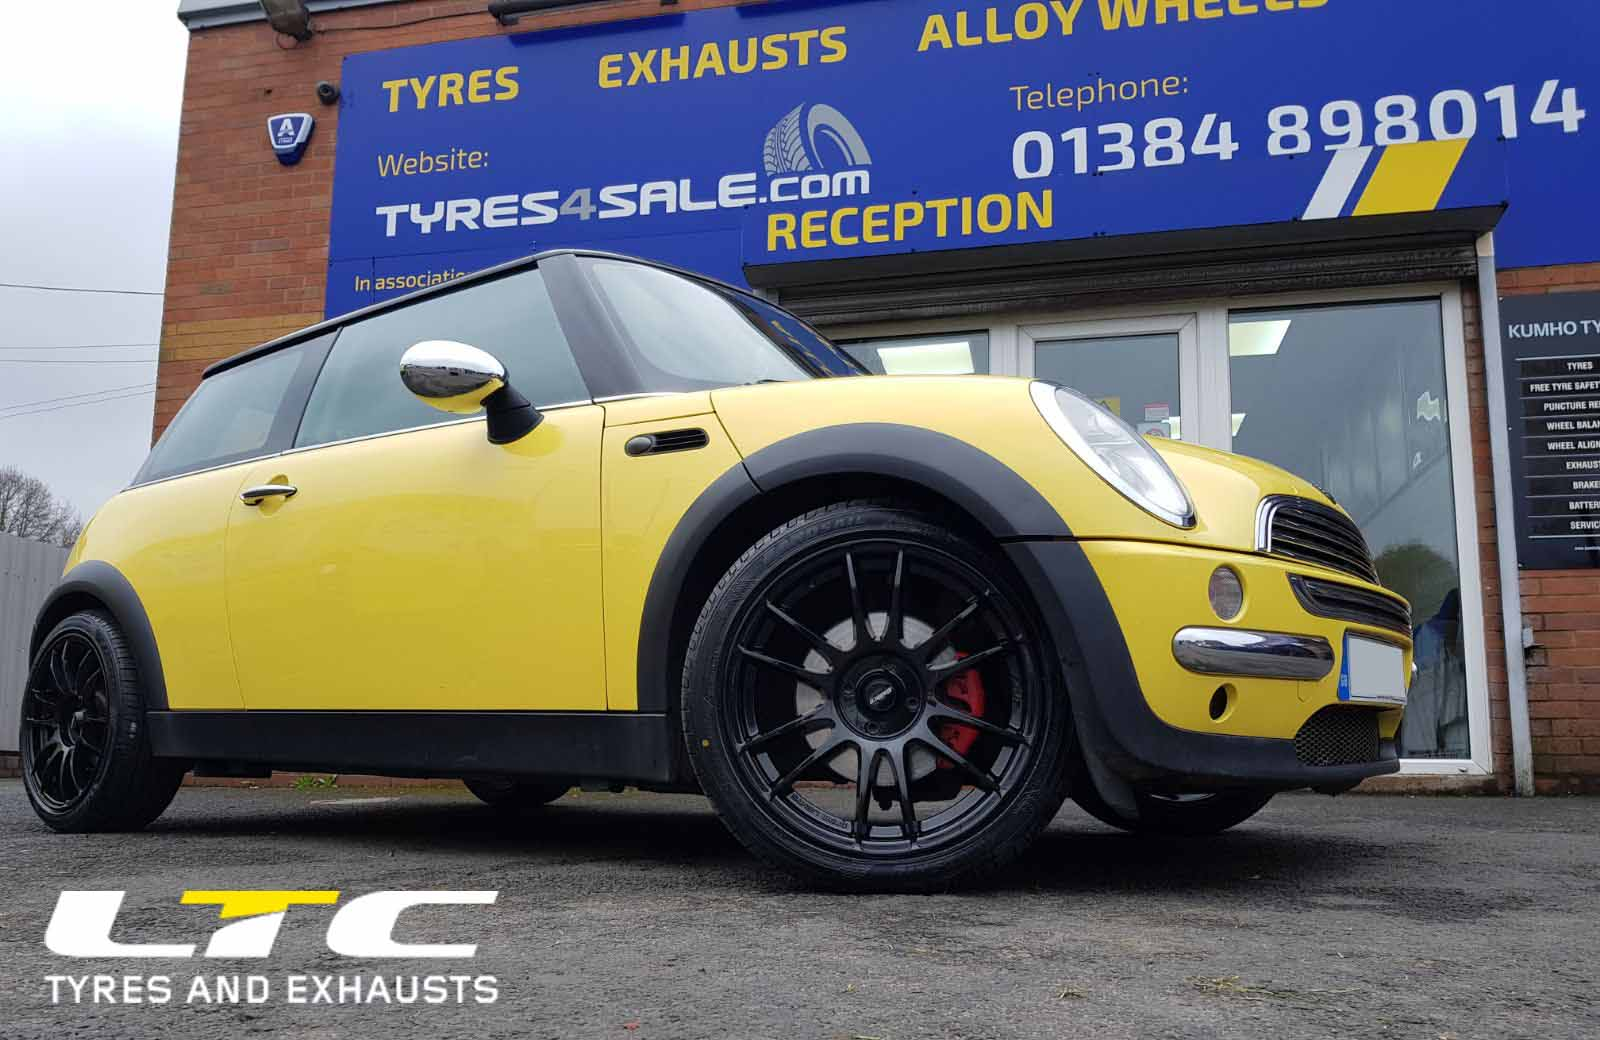 Set Of Calibre Suzuka 17 Quot Alloy Wheels Fitted To Mini Tyres4sale Com